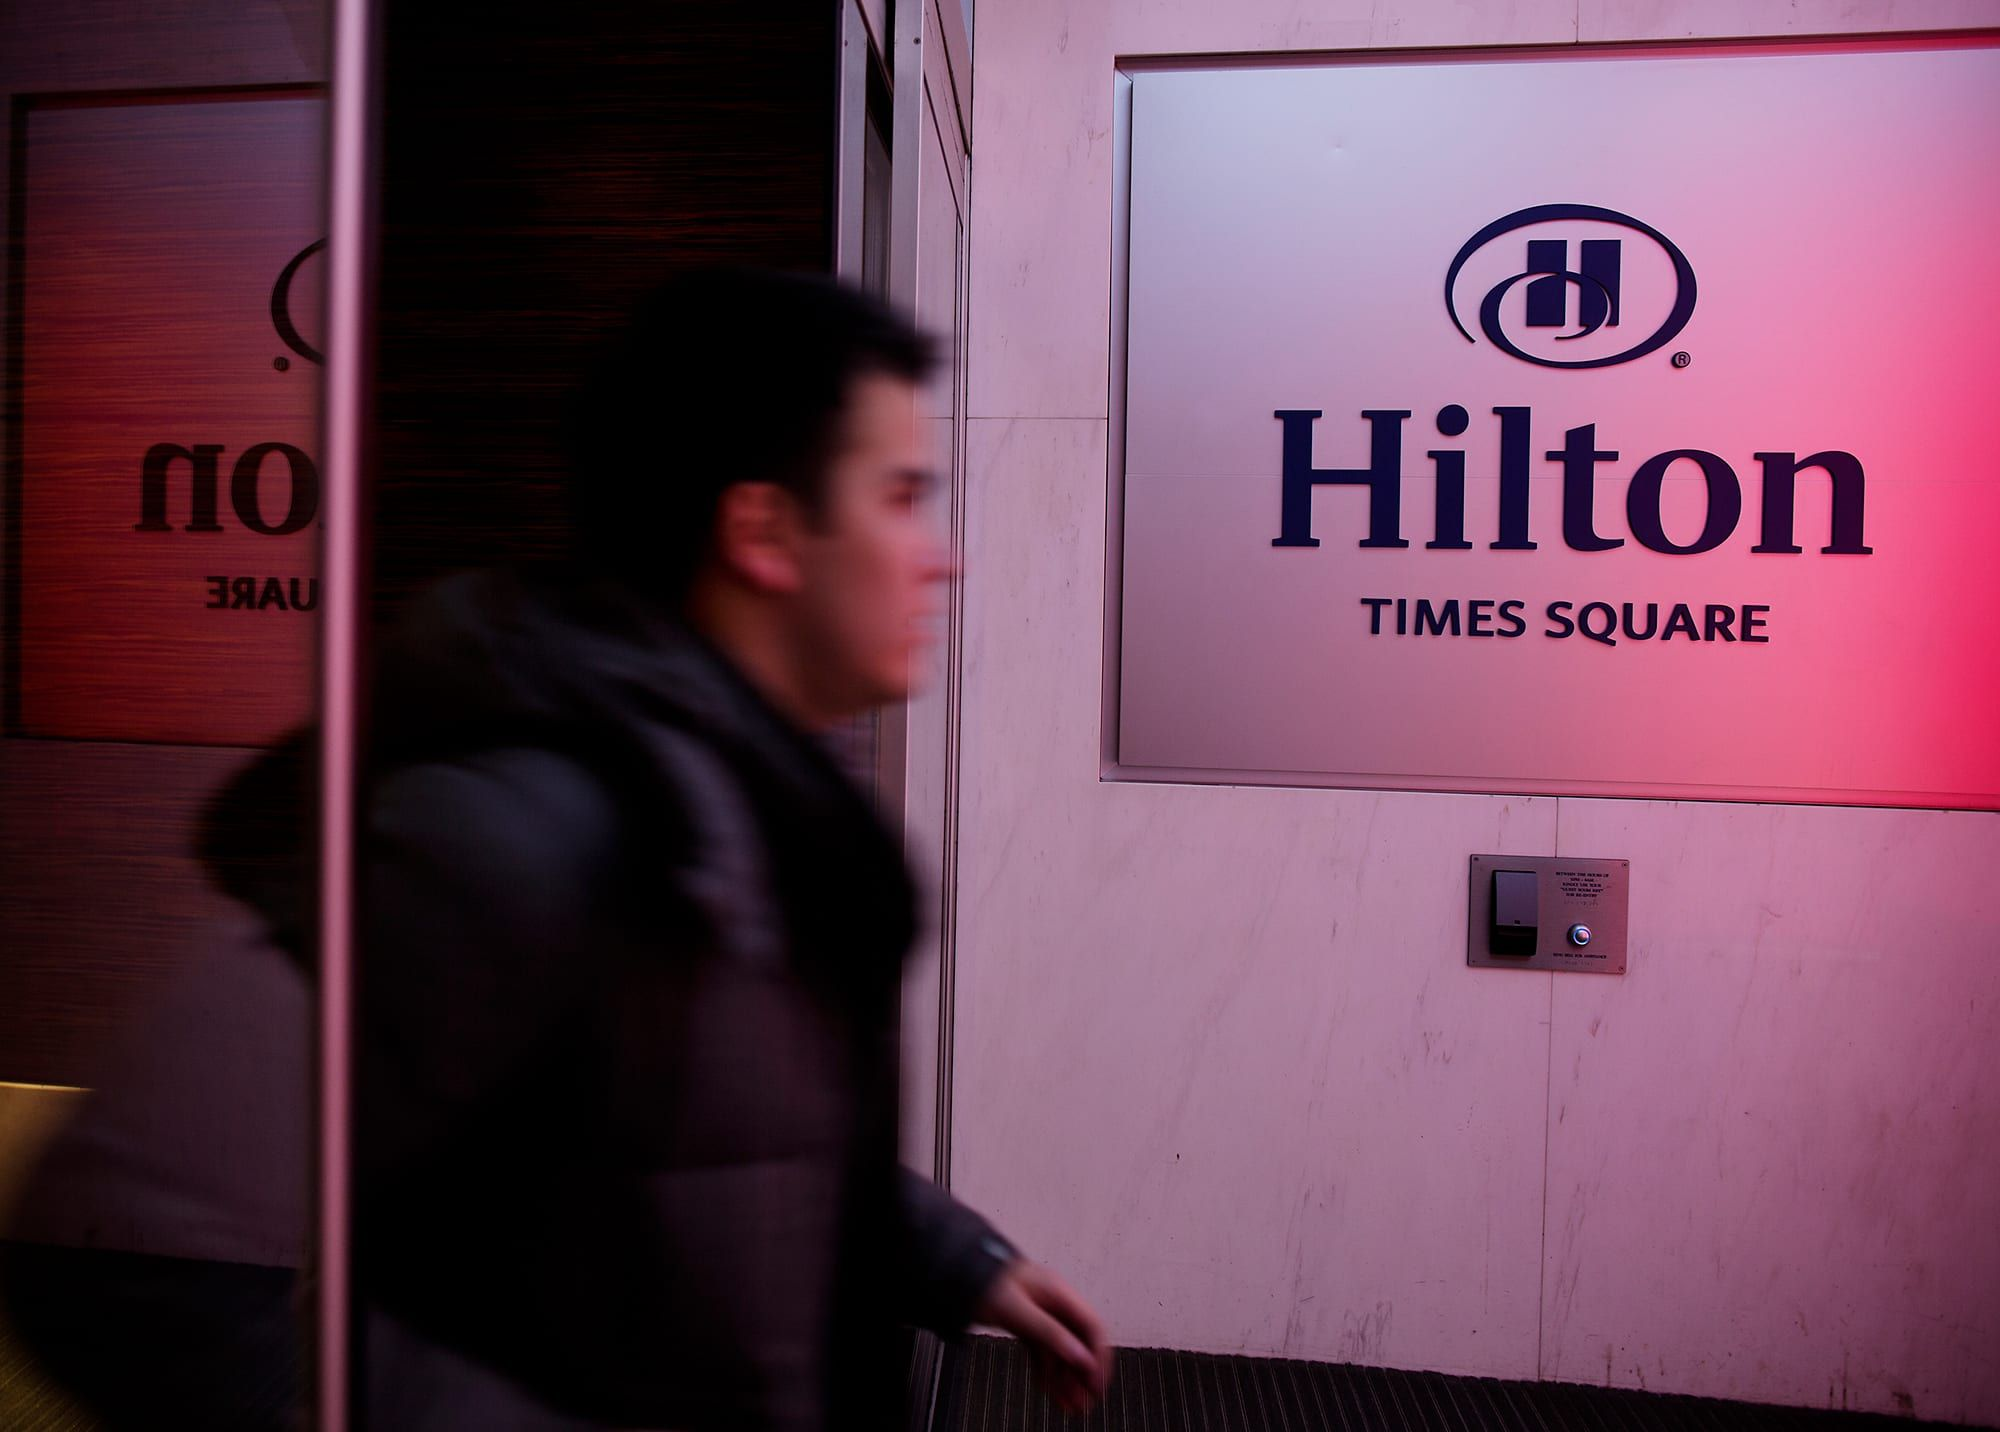 Closure Of Hilton Times Square May Be Tip Of The Iceberg Of Troubles Facing New York Hotels In 2020 Hilton Times Square New York Hotels Times Square